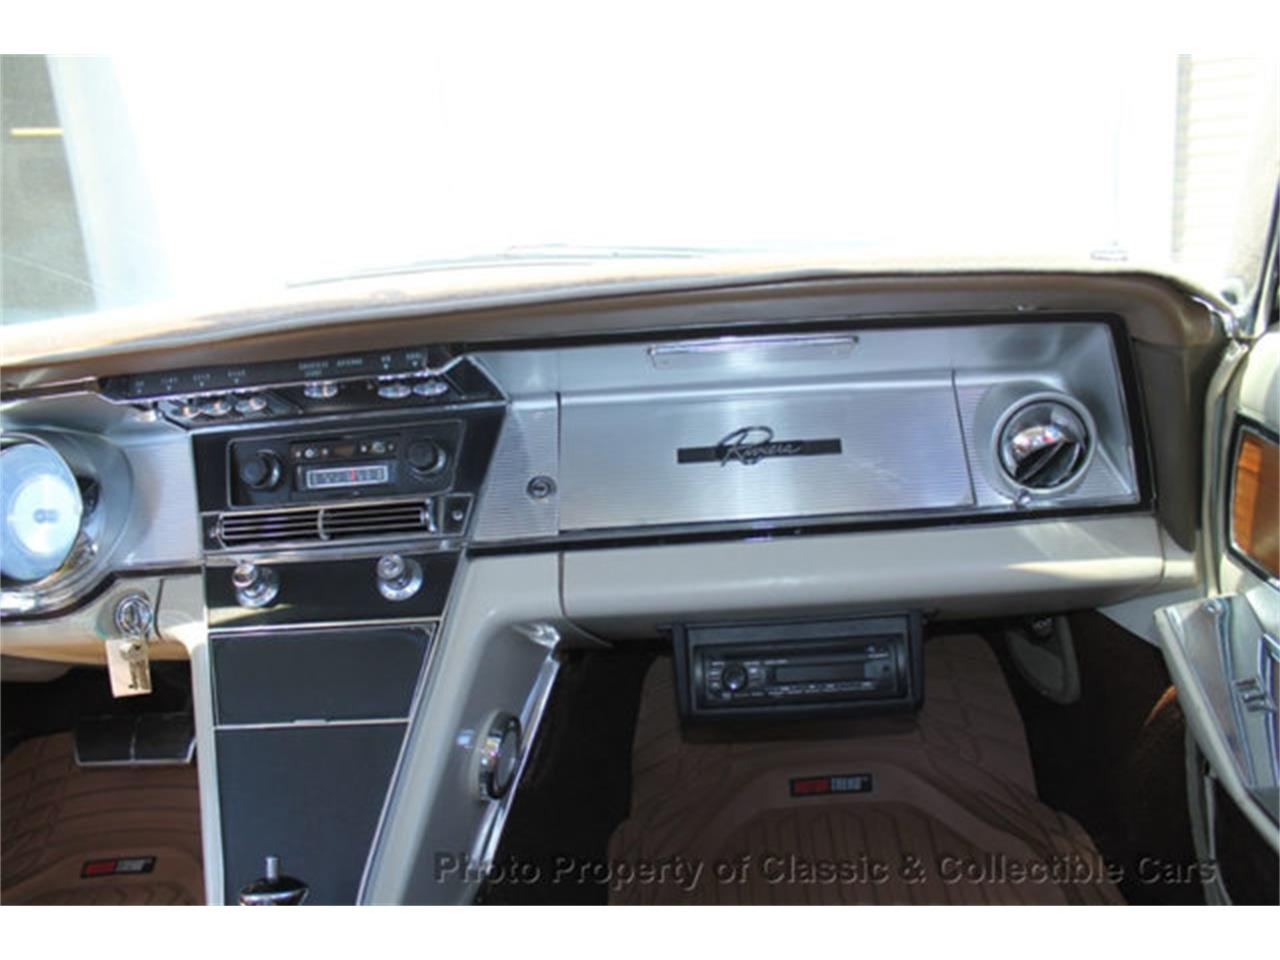 1963 Buick Riviera for sale in Las Vegas, NV – photo 12